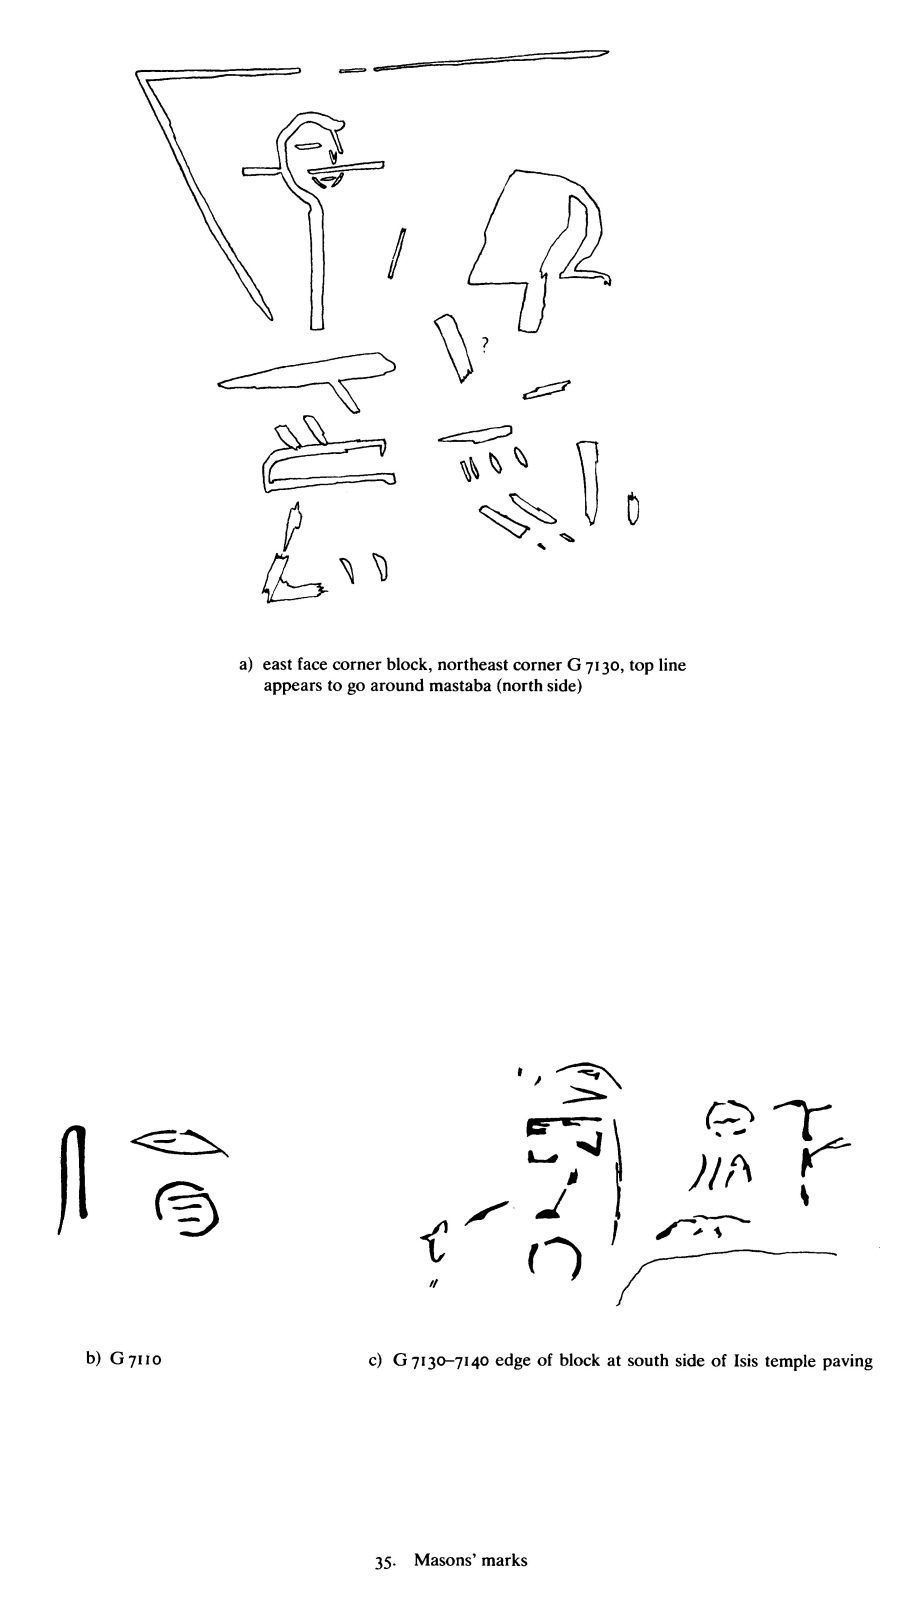 Drawings: Masons' marks from G 7110 and G 7130-7140